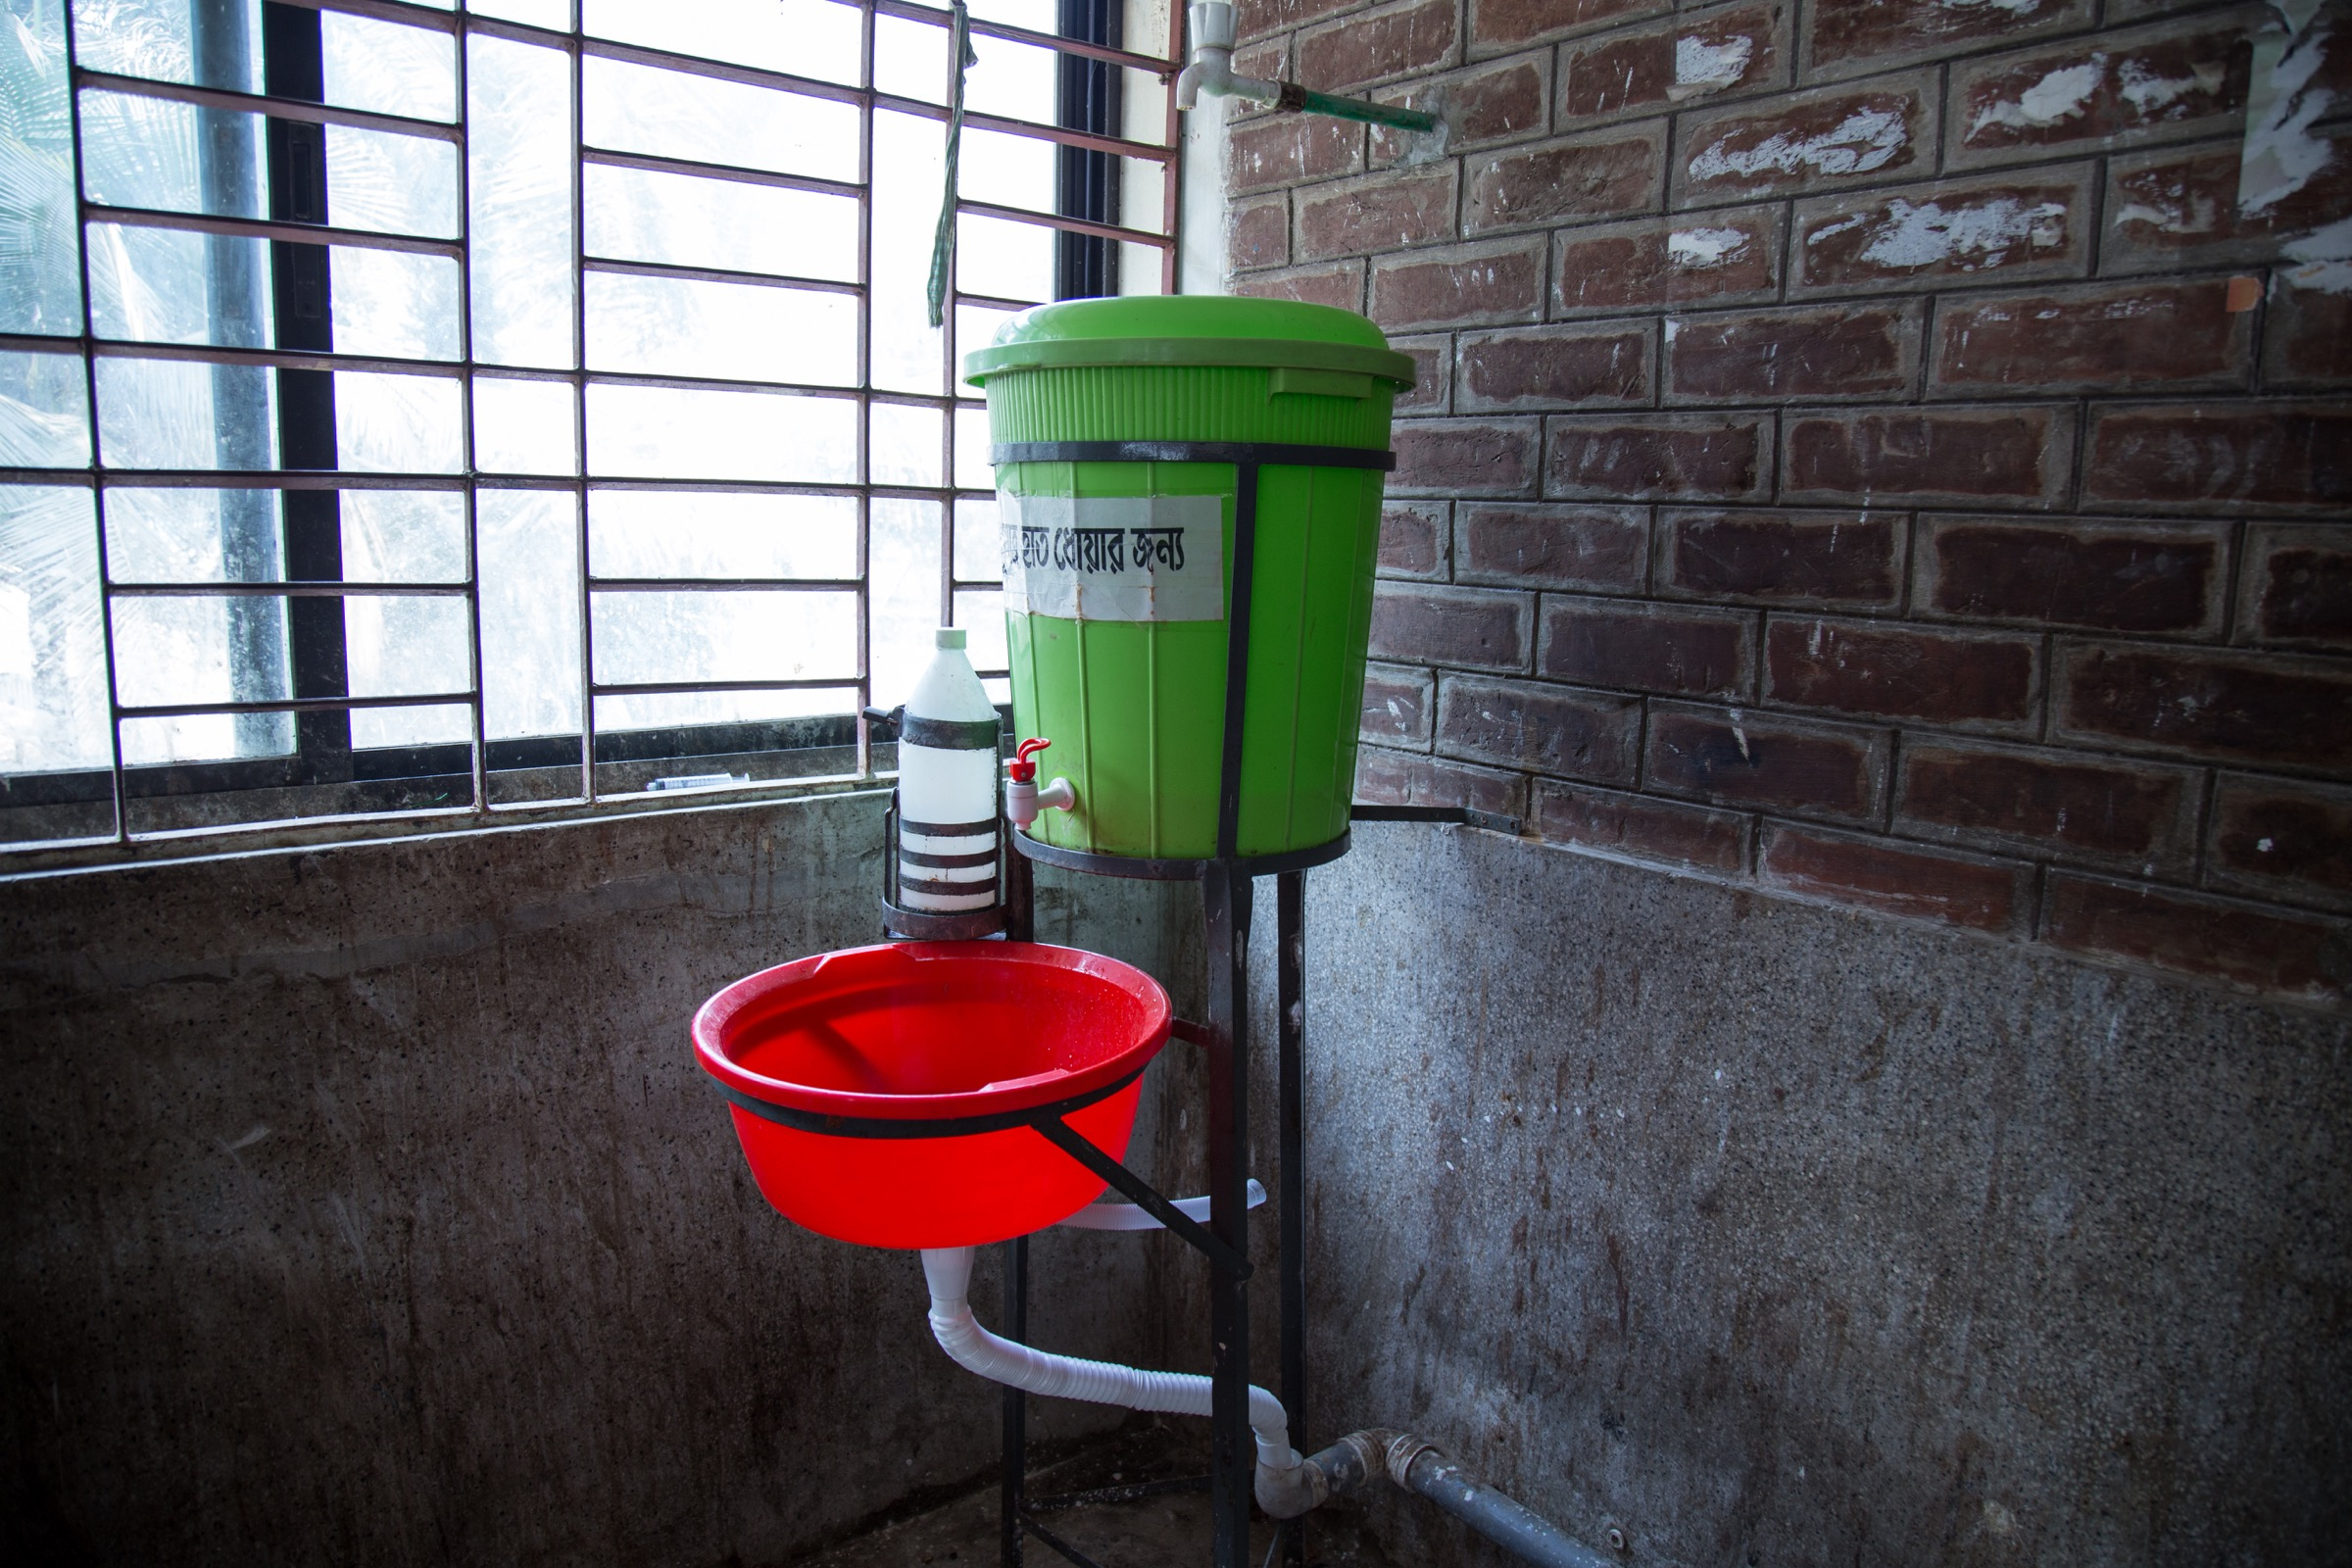 While it's not the source of hot, running water that one might expect in a hospital, this wash basin in Faridpur Medical College Hospital at least provides some means of sanitation for staff and family caregivers—as long as people use them. Photograph by Steven Bedard